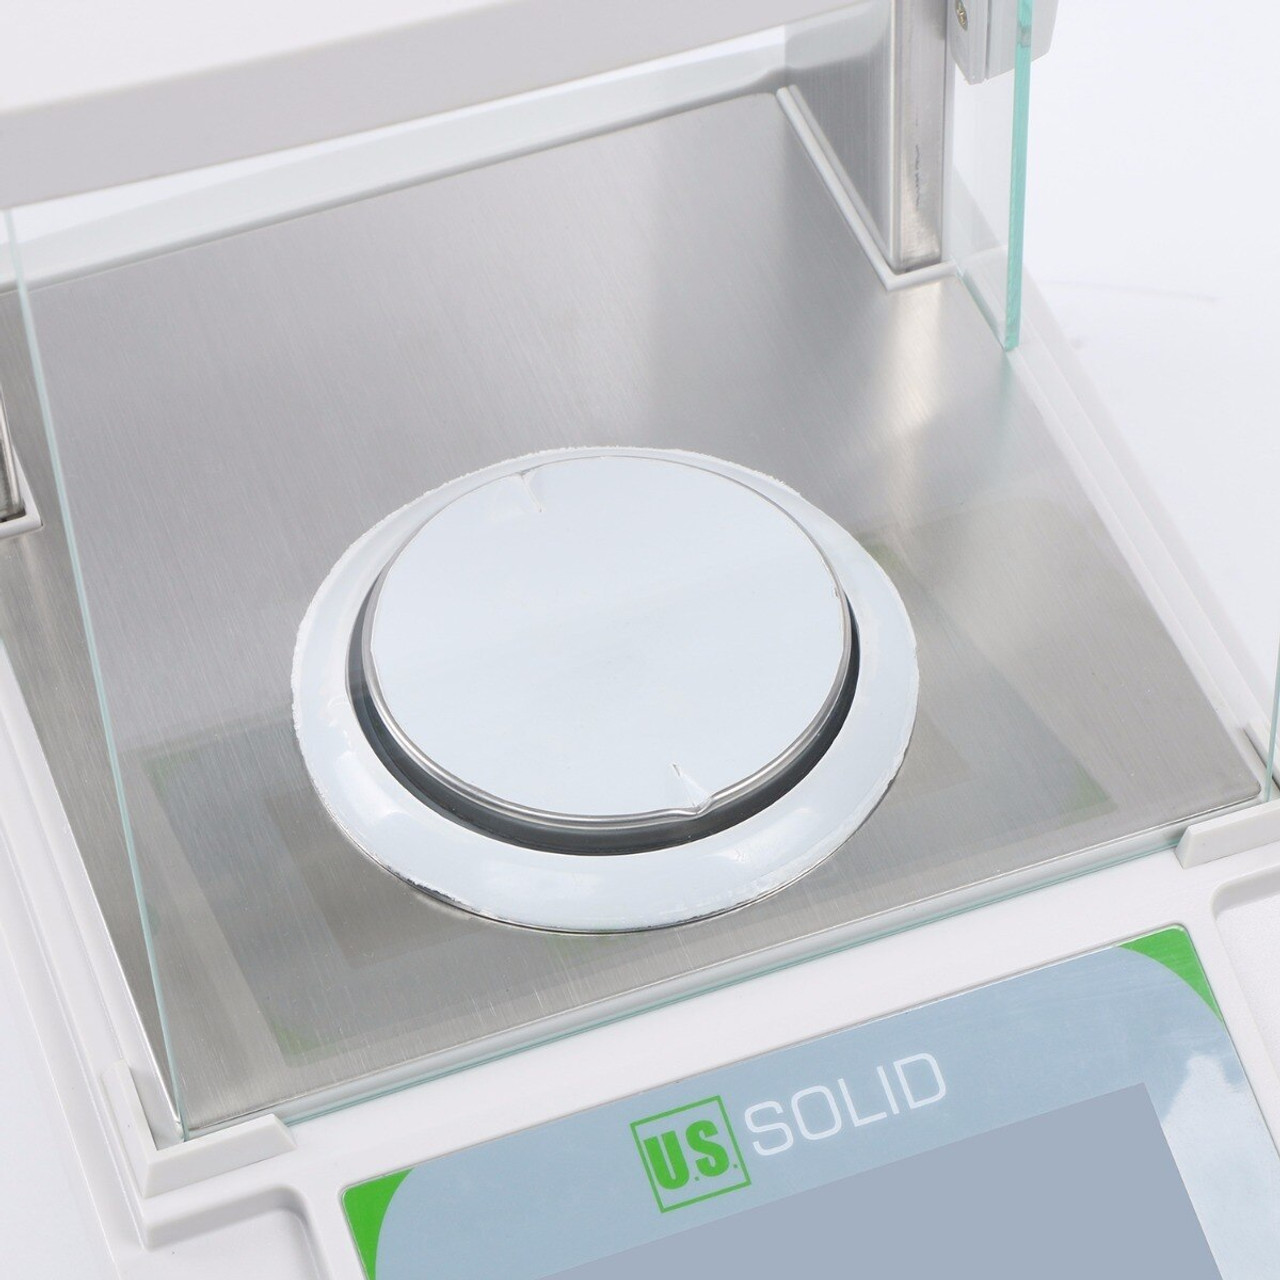 0.1mg Mobile-controlled Analytical Balance, 0.1g x 200g Bluetooth-connected Lab Precision Balance, Touch Screen